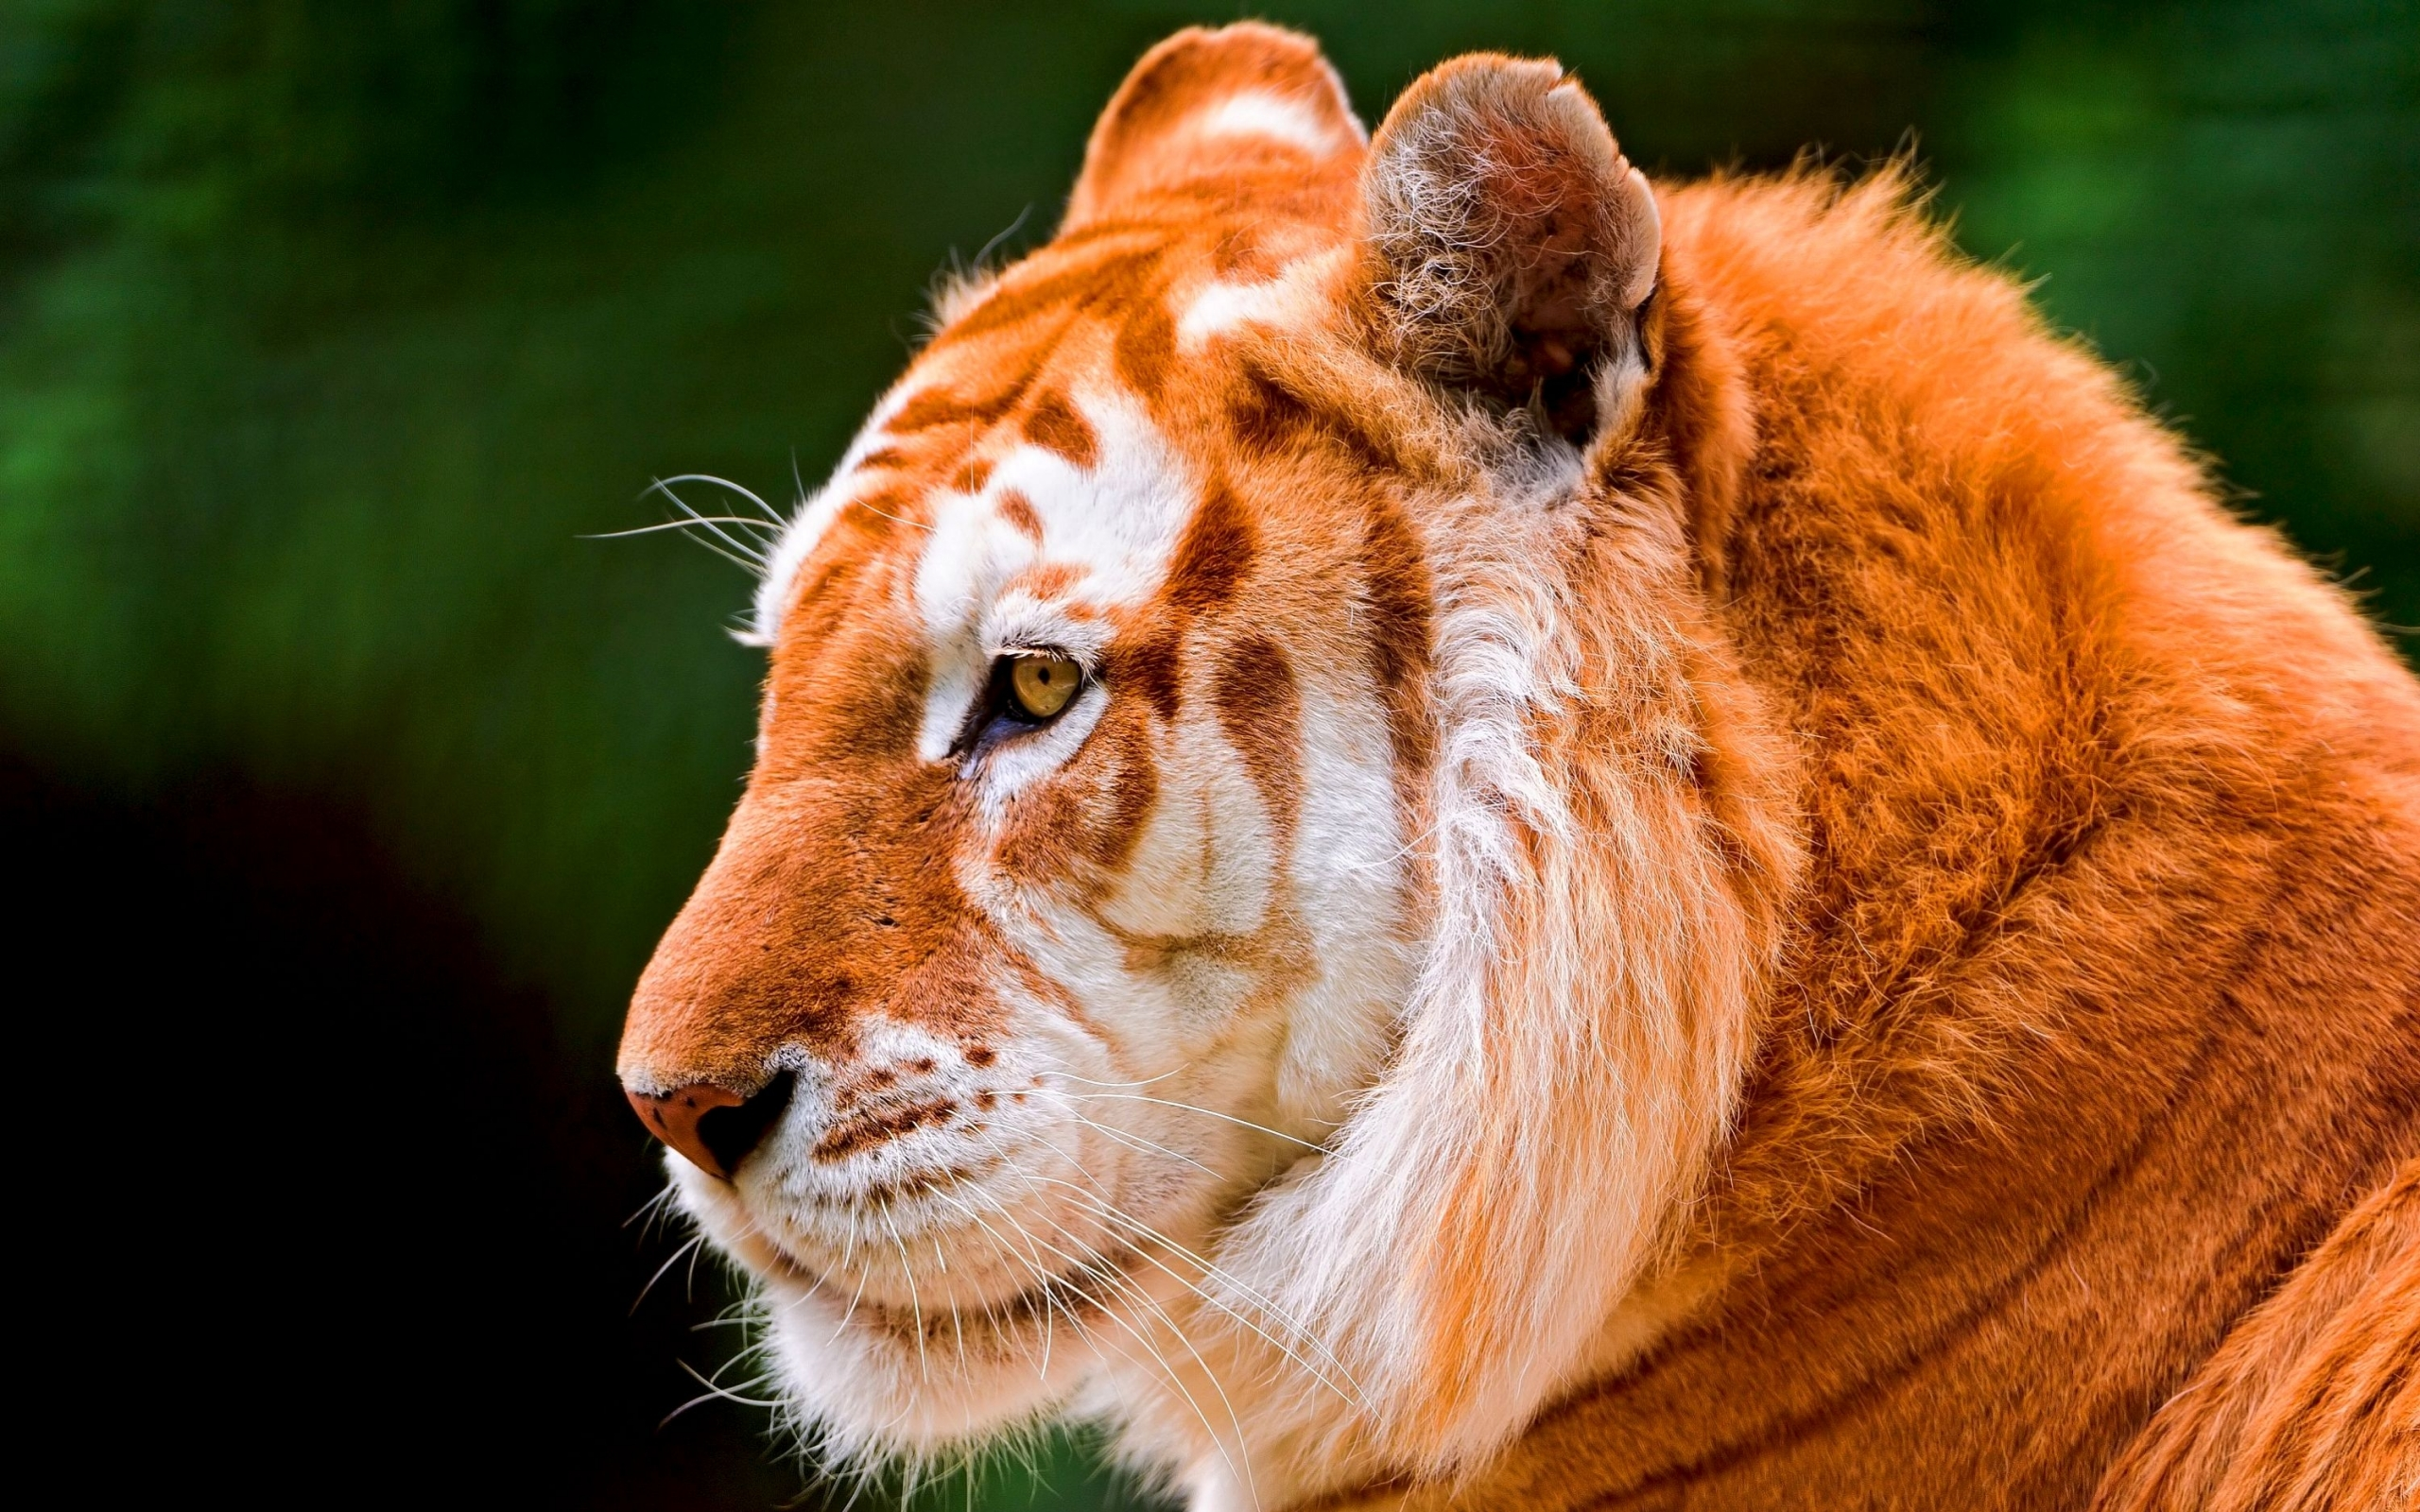 48918 download wallpaper Animals, Tigers screensavers and pictures for free